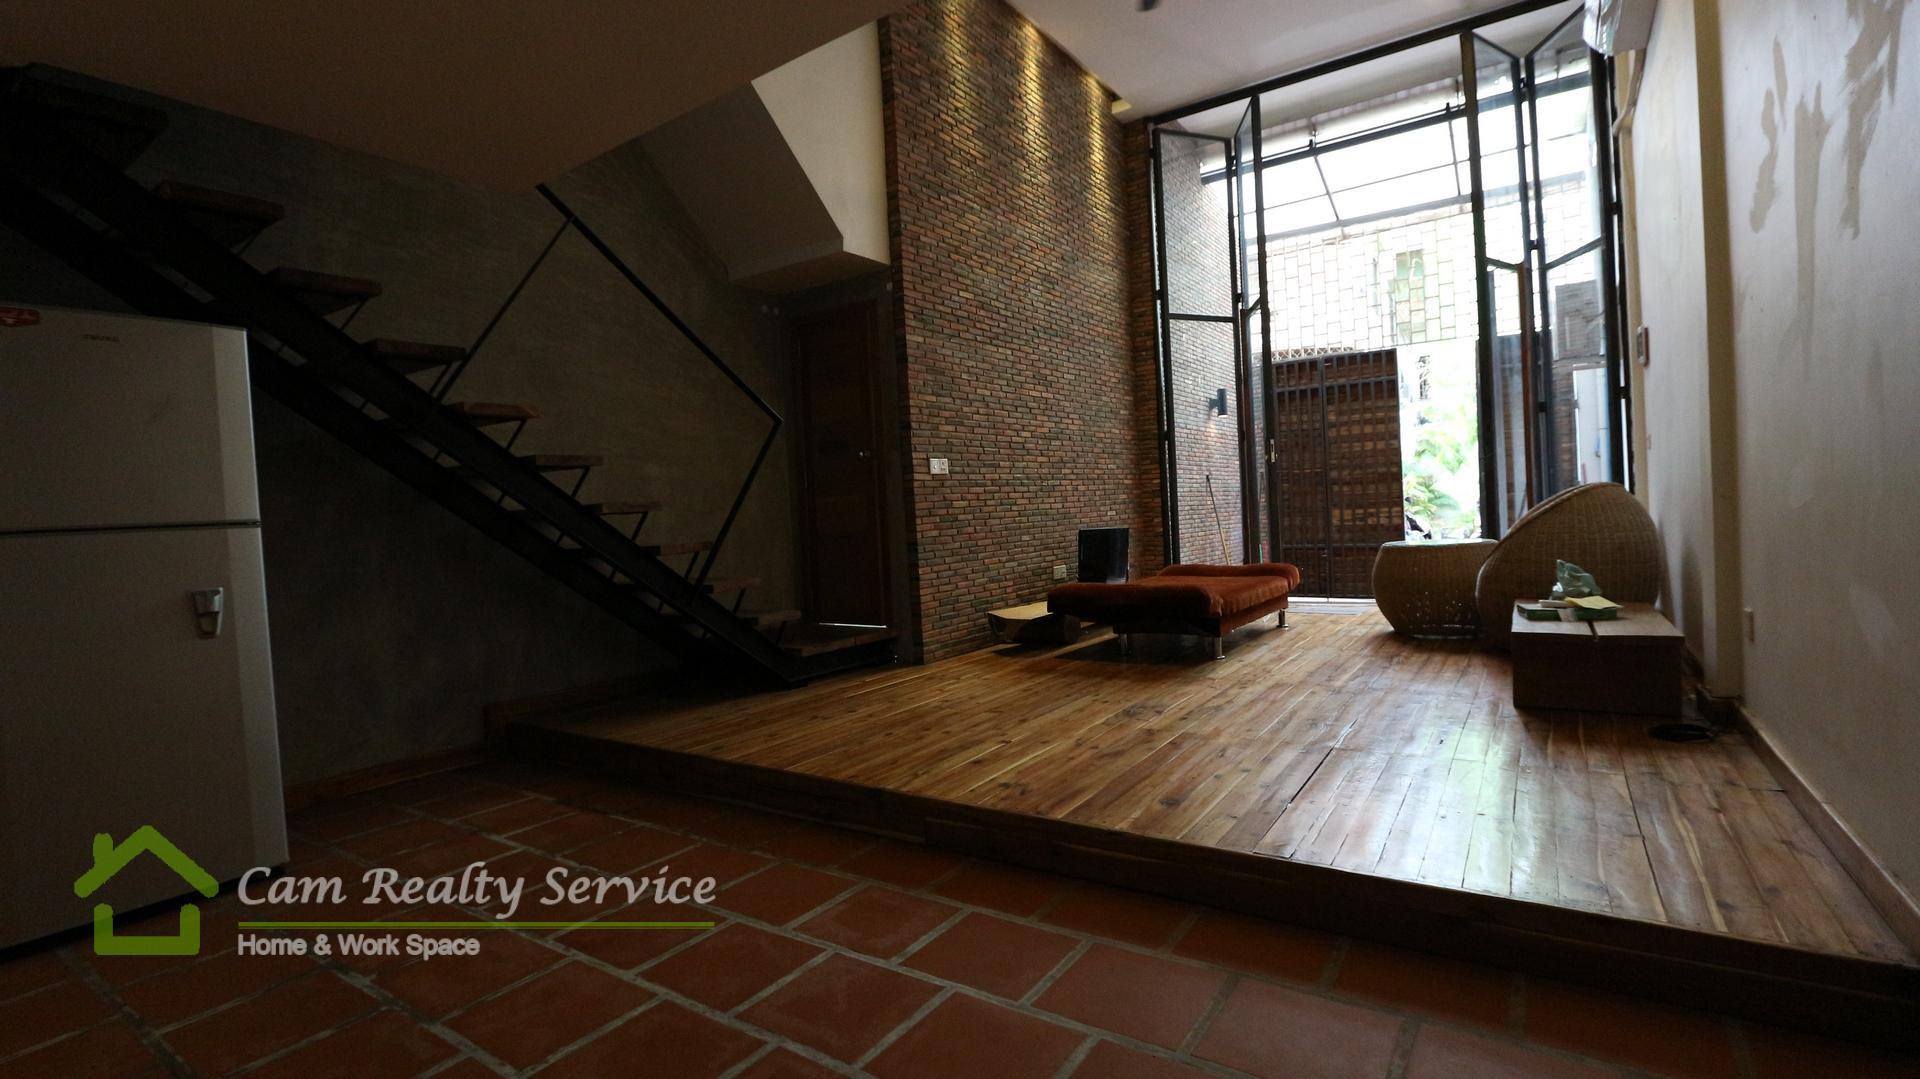 Bassac Lane area| Western style duplex 1 bedroom renovated house available for rent| 700$/month